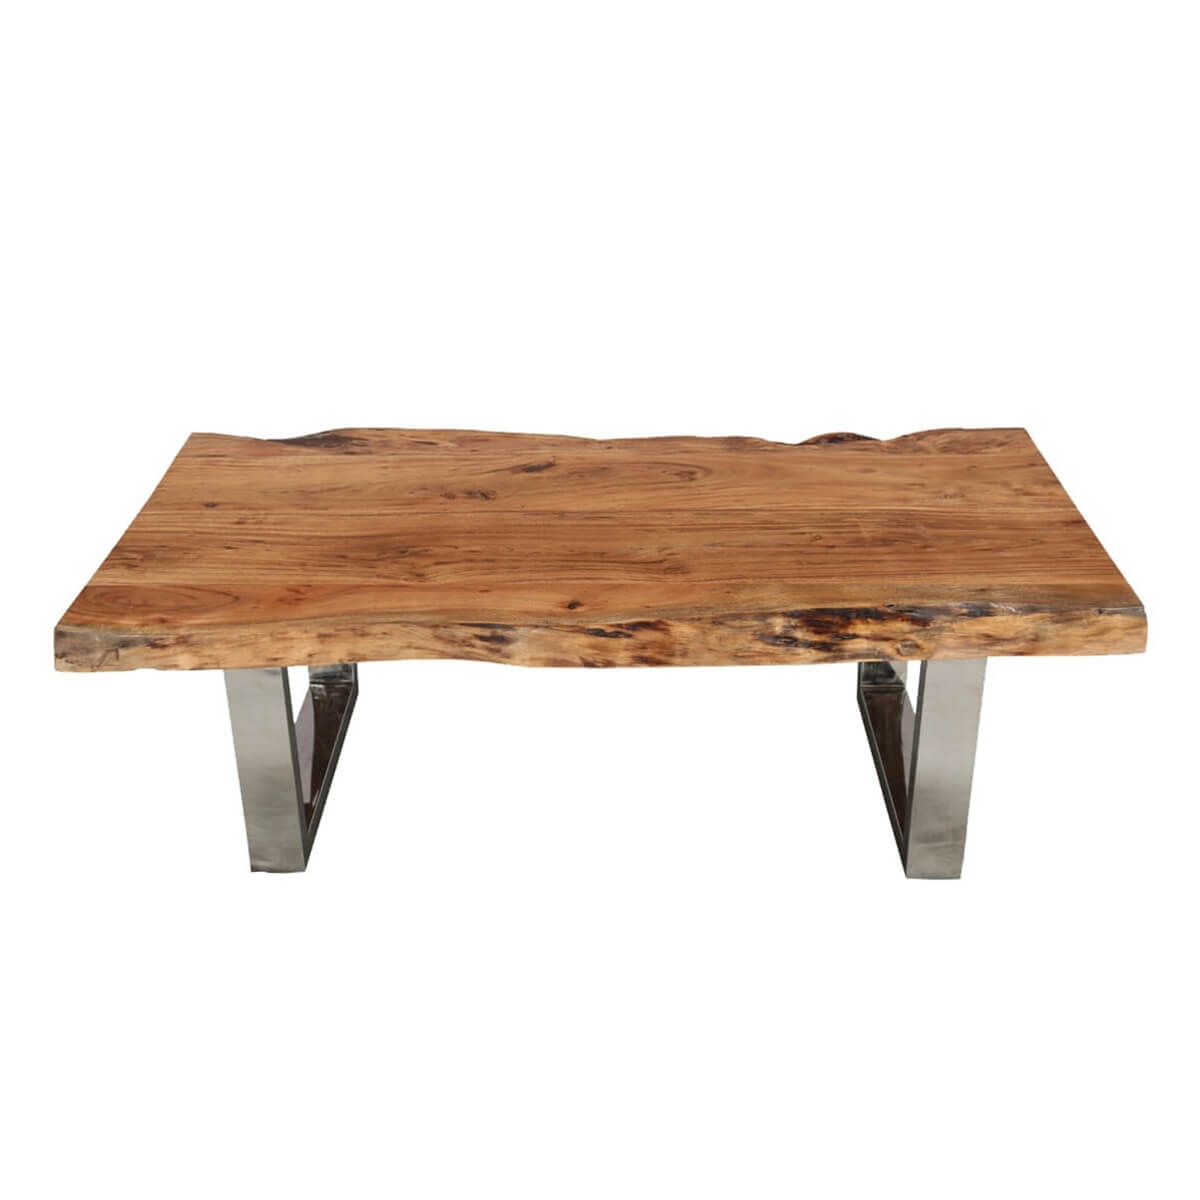 "Natural Edge Acacia Wood & Steel 55"" Long Coffee Table"